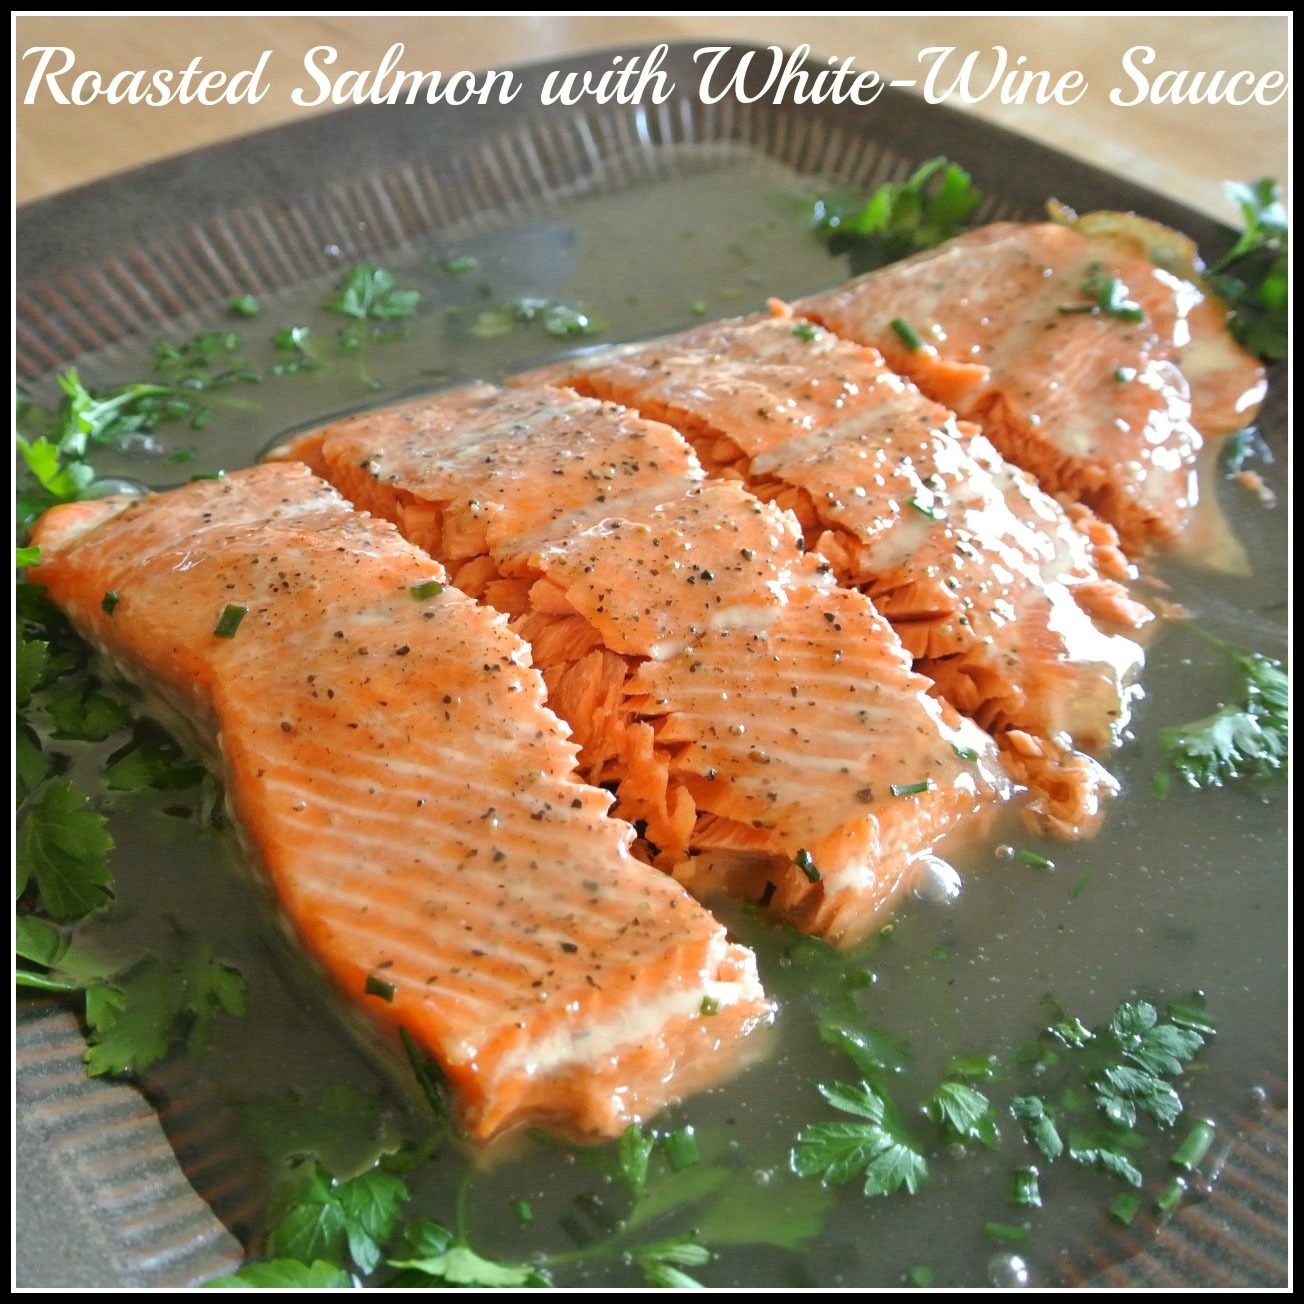 Gourmet Cooking For Two: Roasted Salmon with White-Wine Sauce